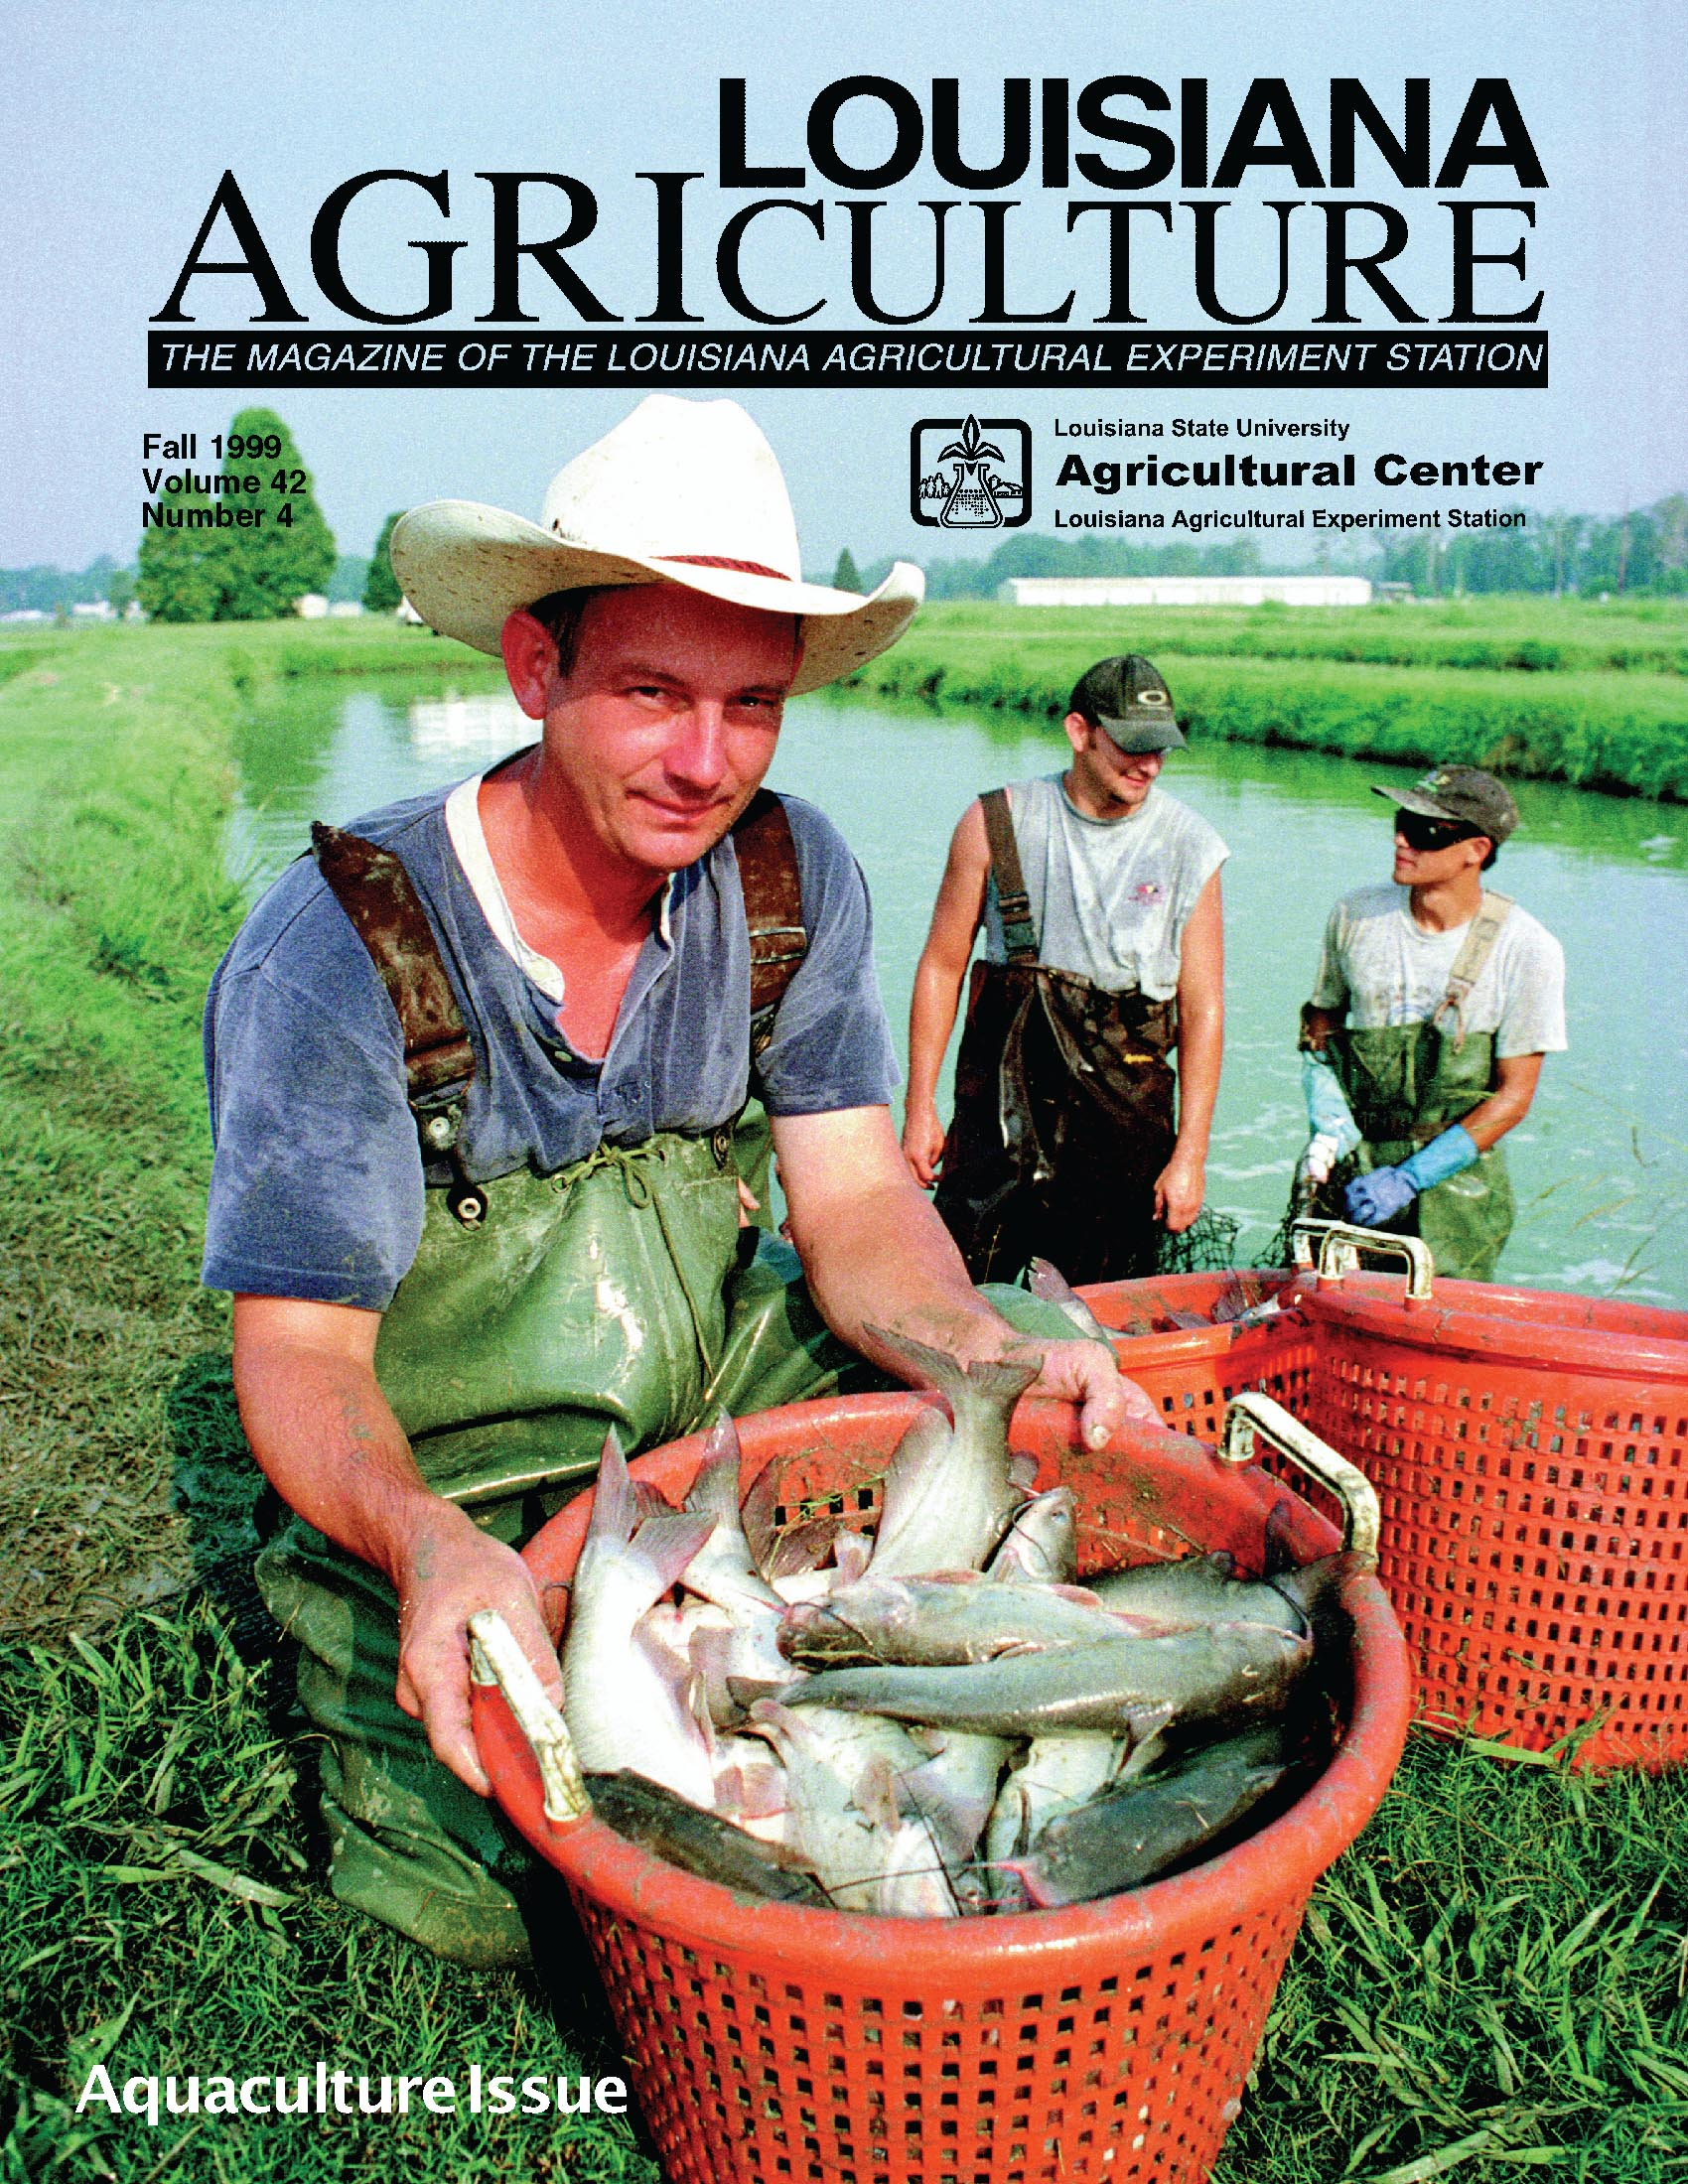 Louisiana Agriculture Magazine Fall 1999